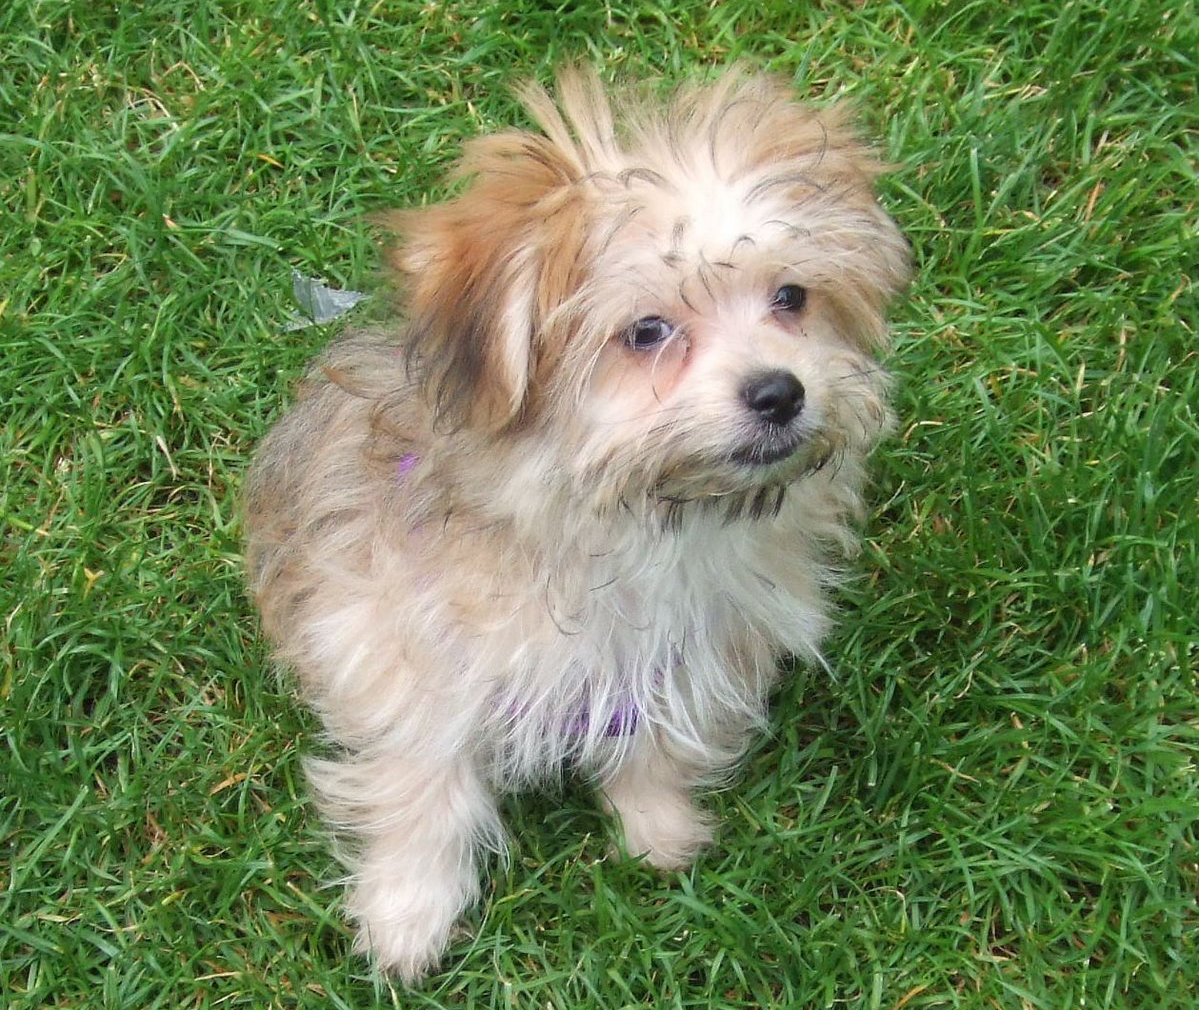 Olivia A. Benowitz '09 adopted a Maltese-Pomeranian mix named Maisie the day she received her Harvard diploma.